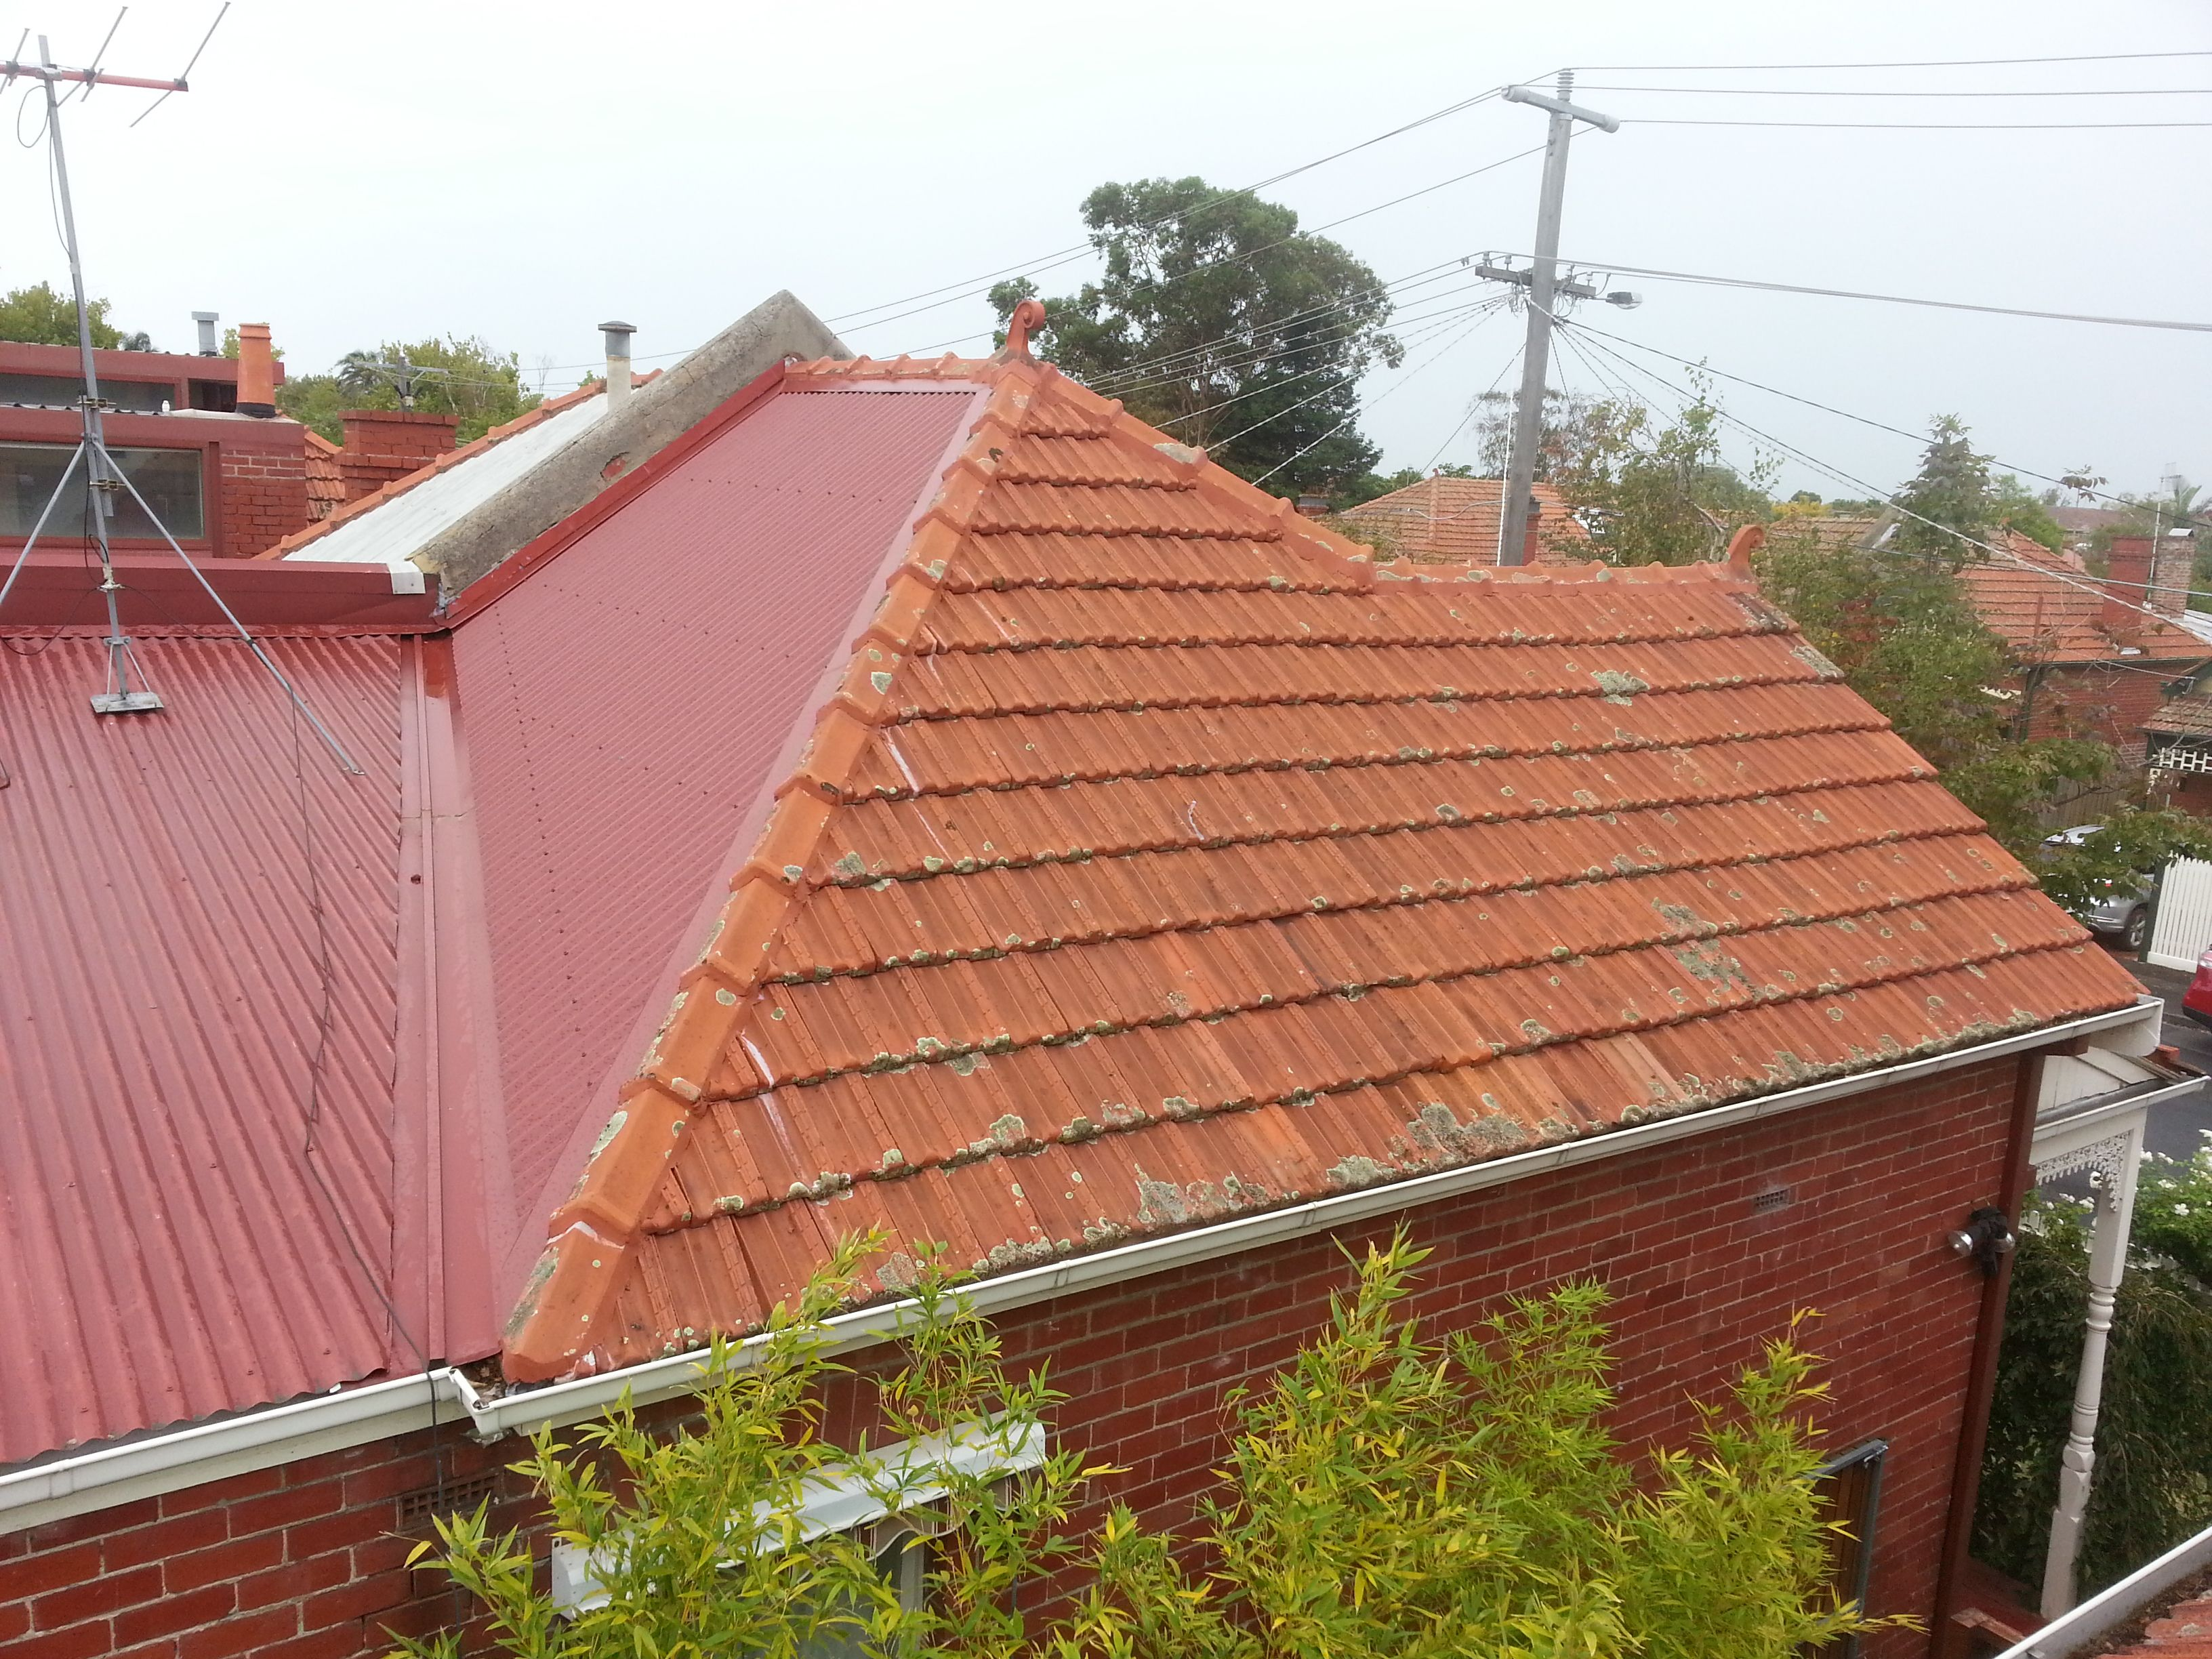 Colorbond roofing colours pictures to pin on pinterest - Colorbond Roofing With Terracotta Roof Repairs Manor Red